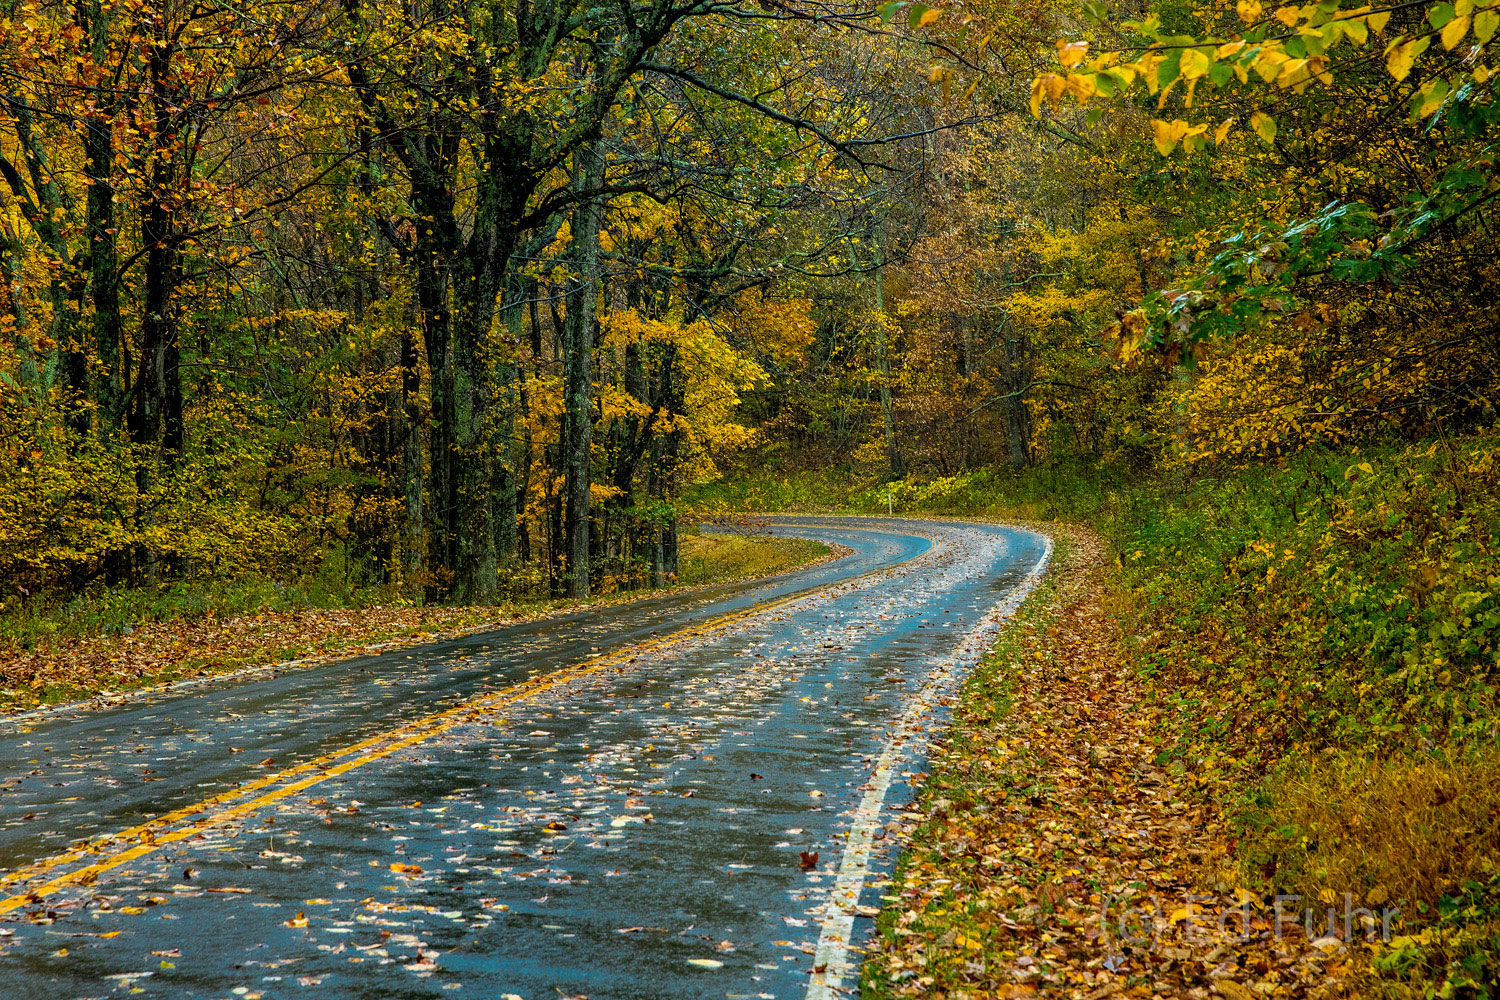 On a wet day, Skyline Drive glistens and the colors of fall dazzle.